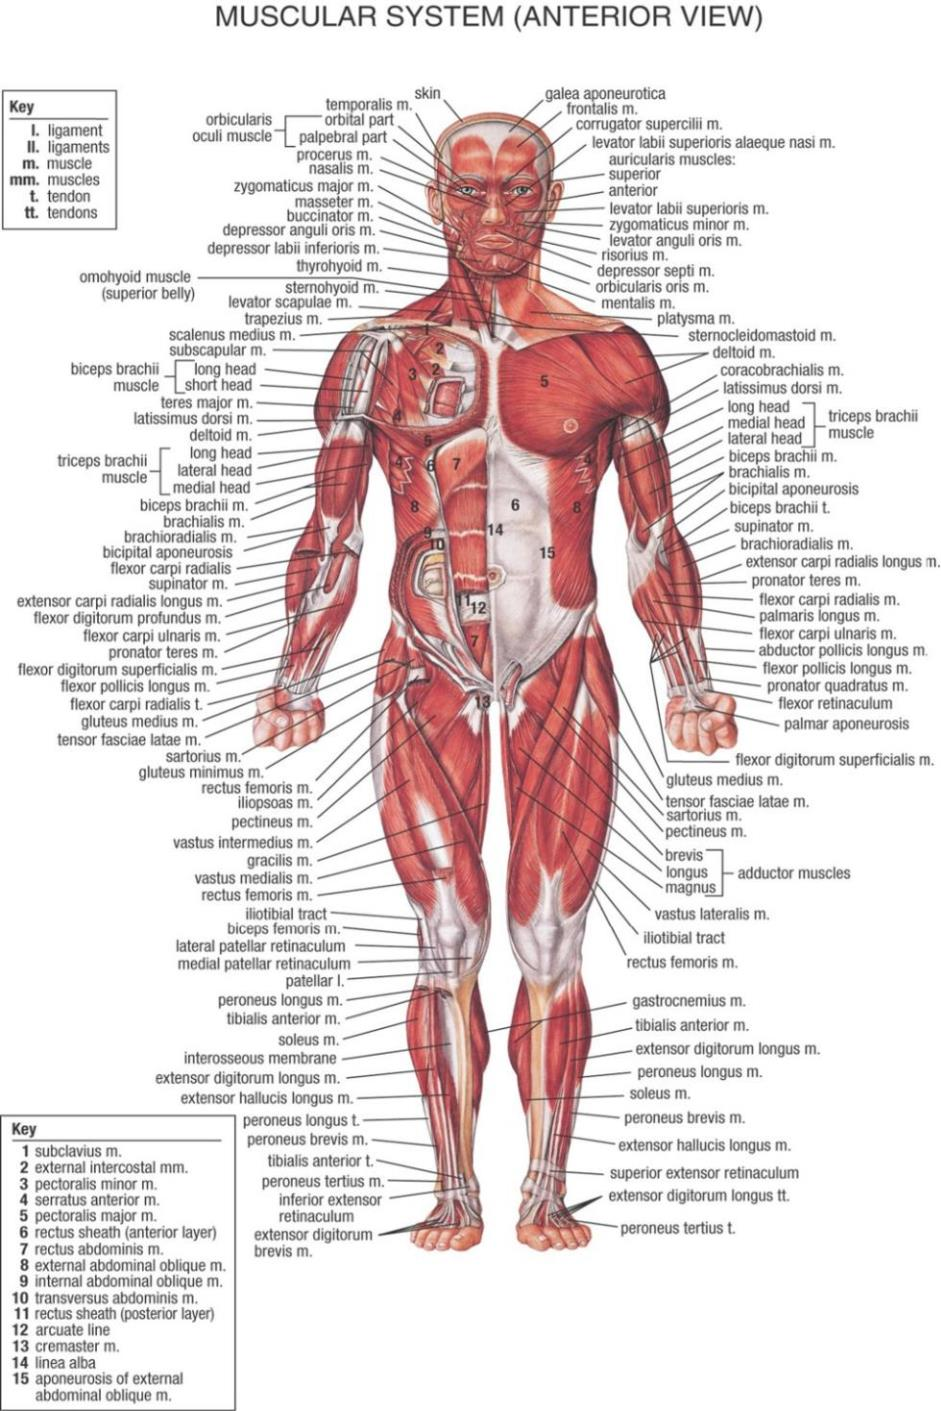 Human muscle anatomy diagram